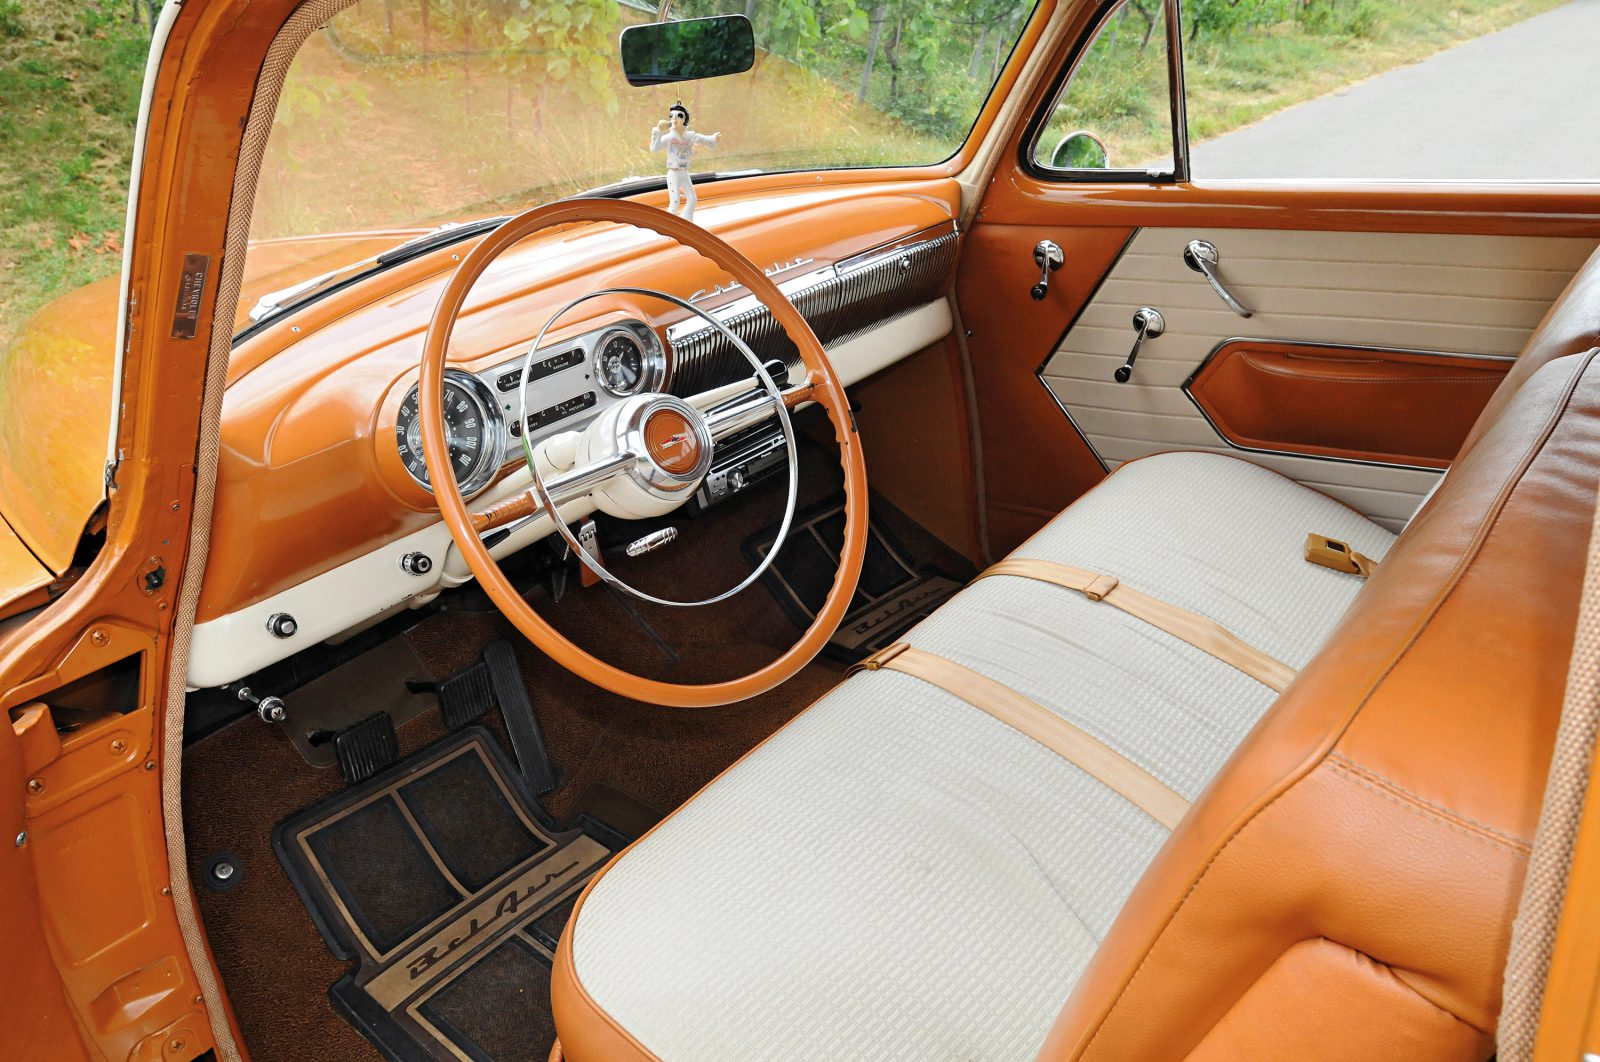 Chevrolet Bel Air interieur